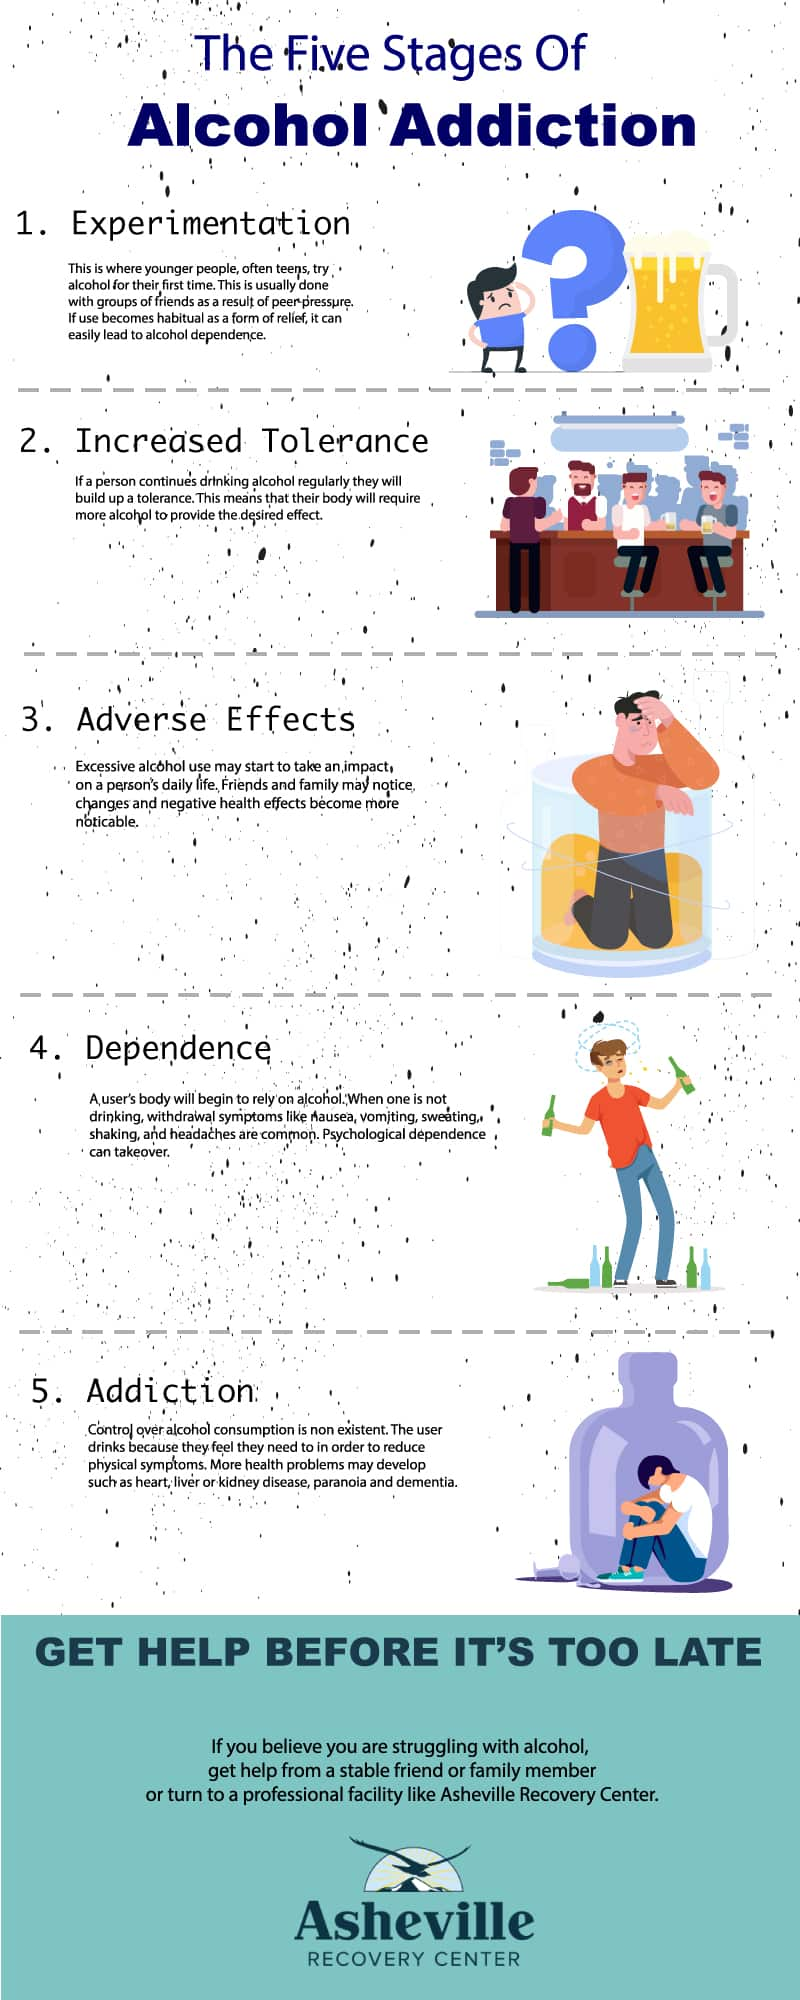 The Five Stages of Alcohol Addiction